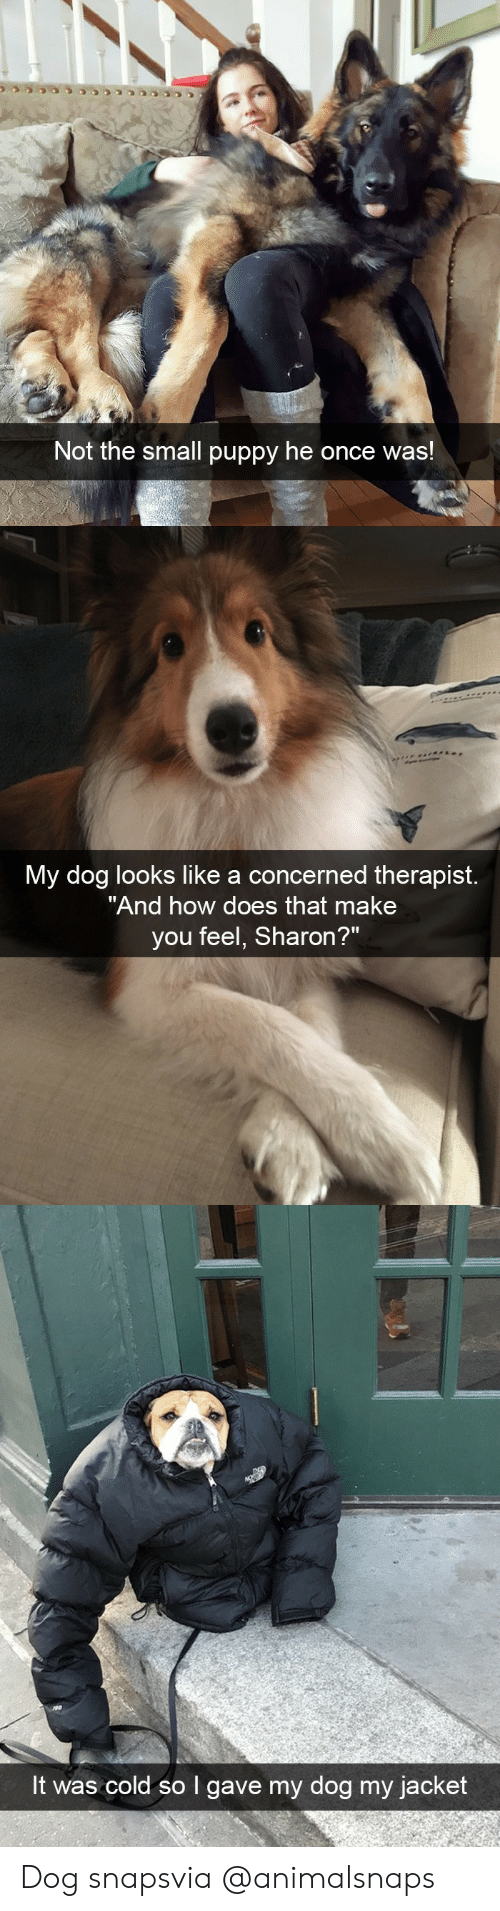 "Target, Tumblr, and Http: Not the small puppy he once was!   My dog looks like a concerned therapist.  ""And how does that make  you feel, Sharon?   It was cold so I gave my dog my jacket Dog snapsvia @animalsnaps"